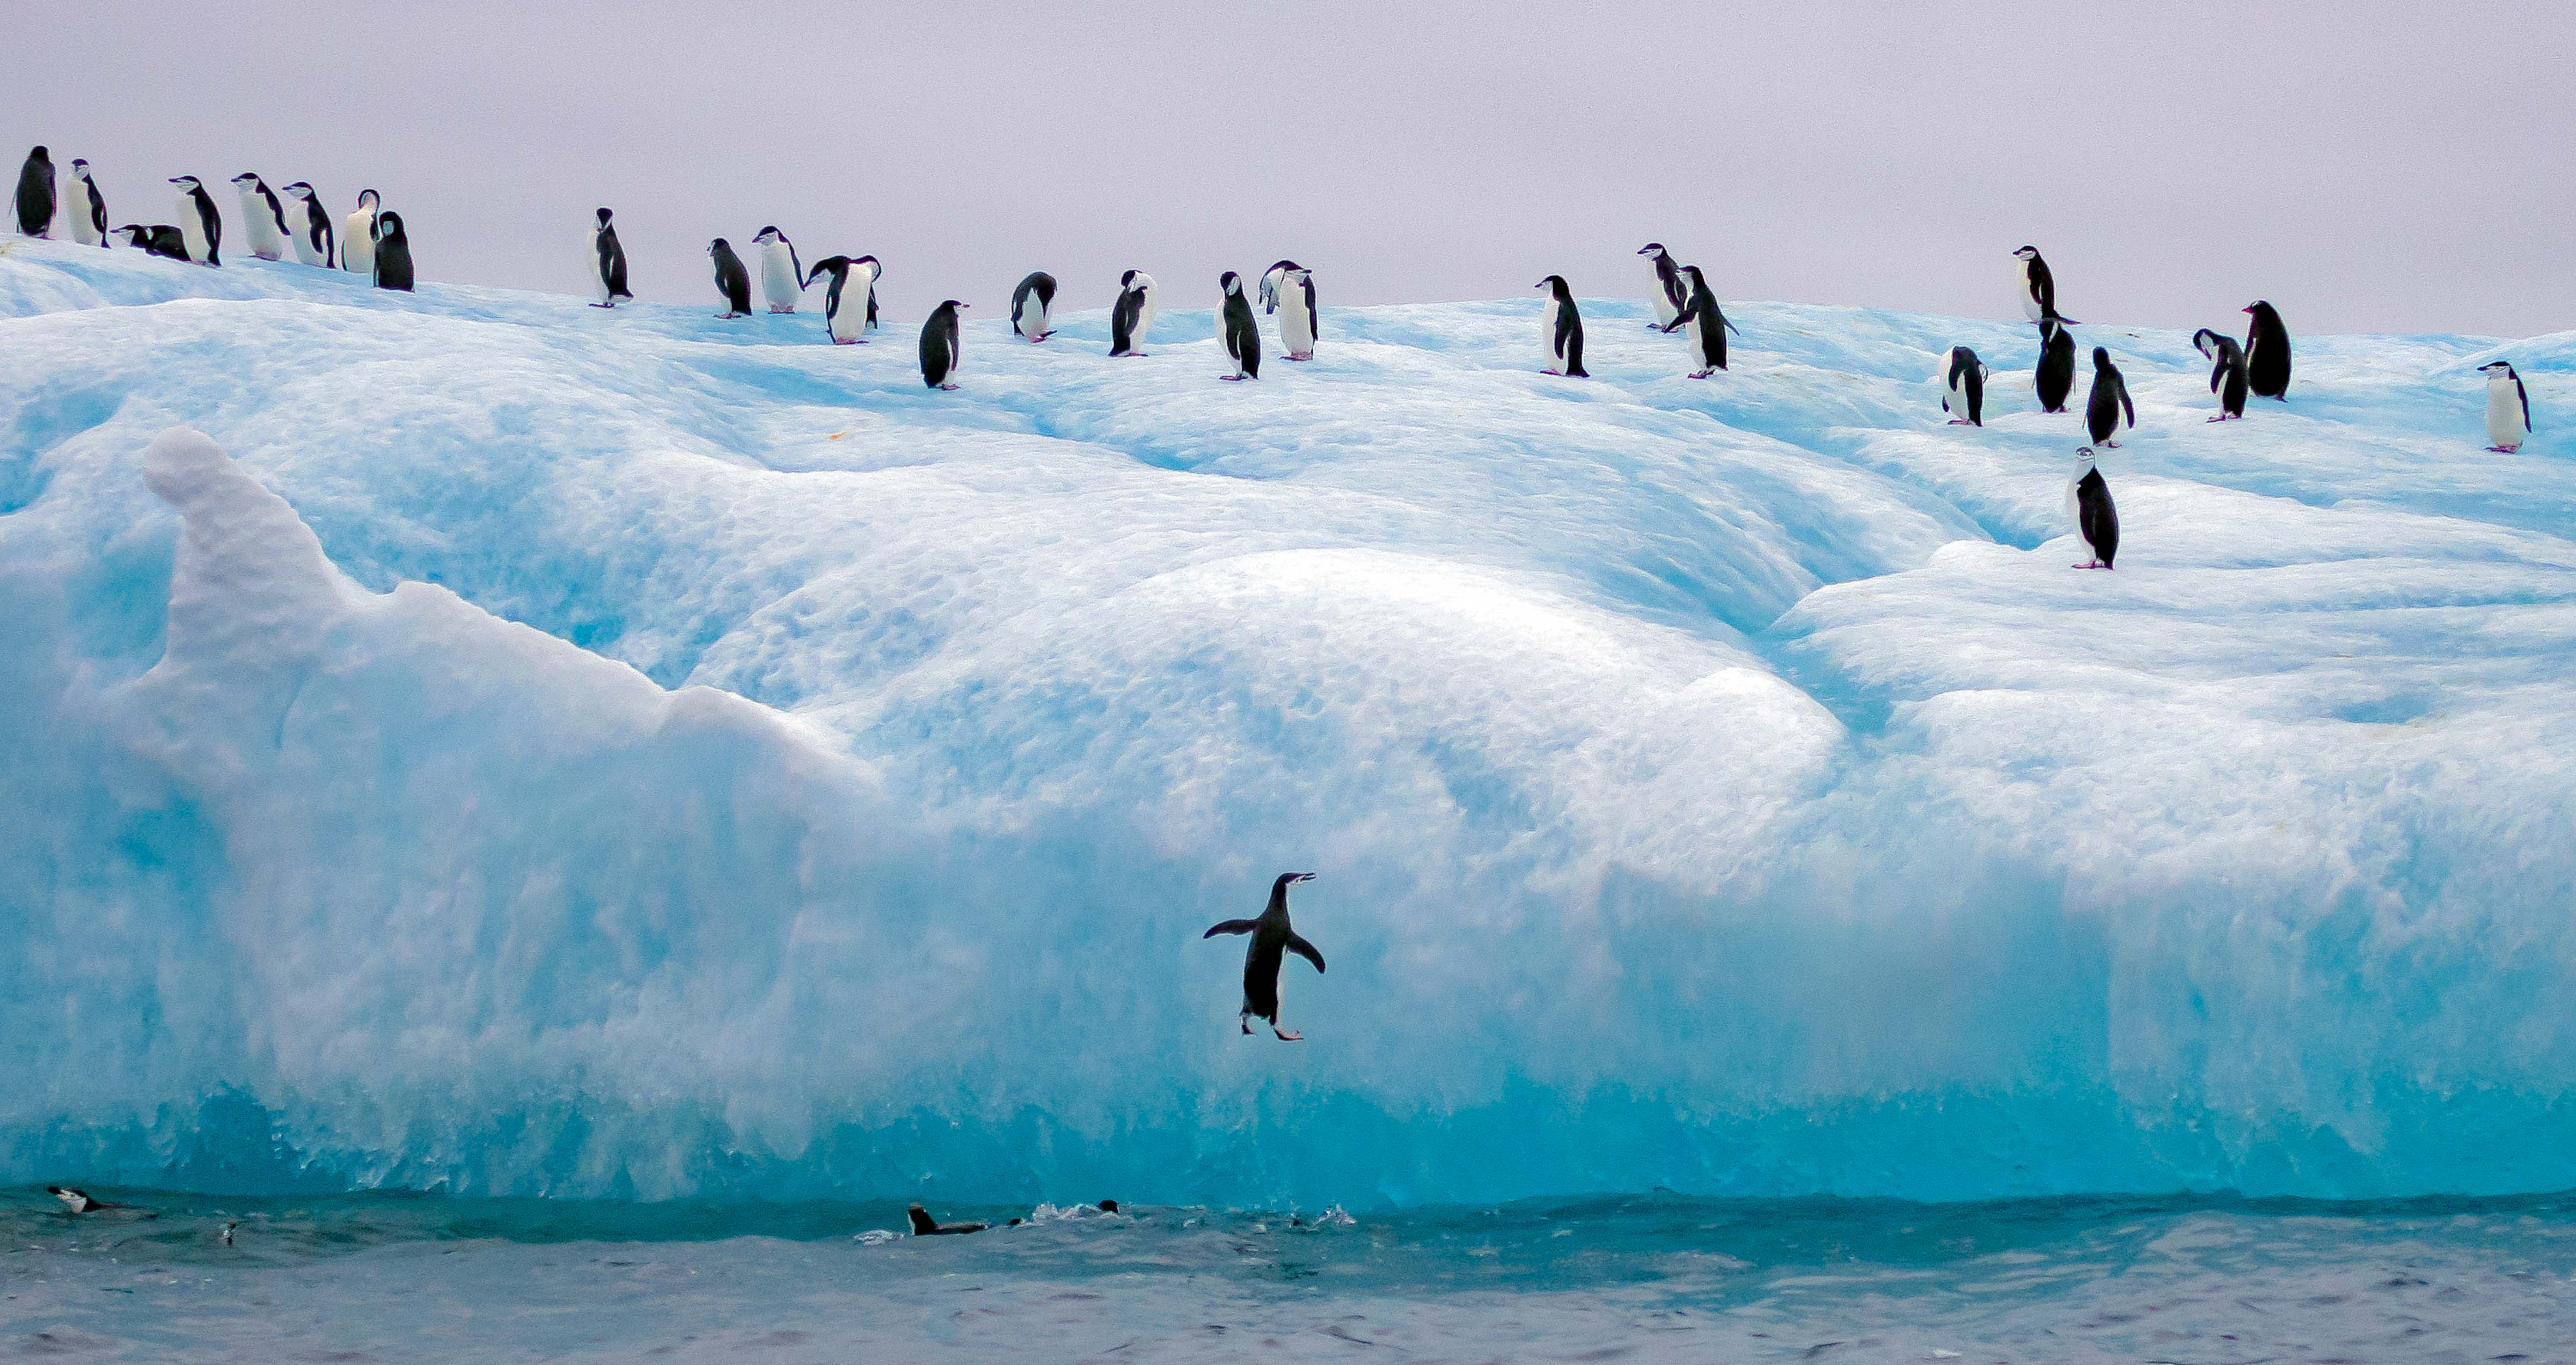 South Sandwich Is, Penguin Leaping On To Iceberg, 2006